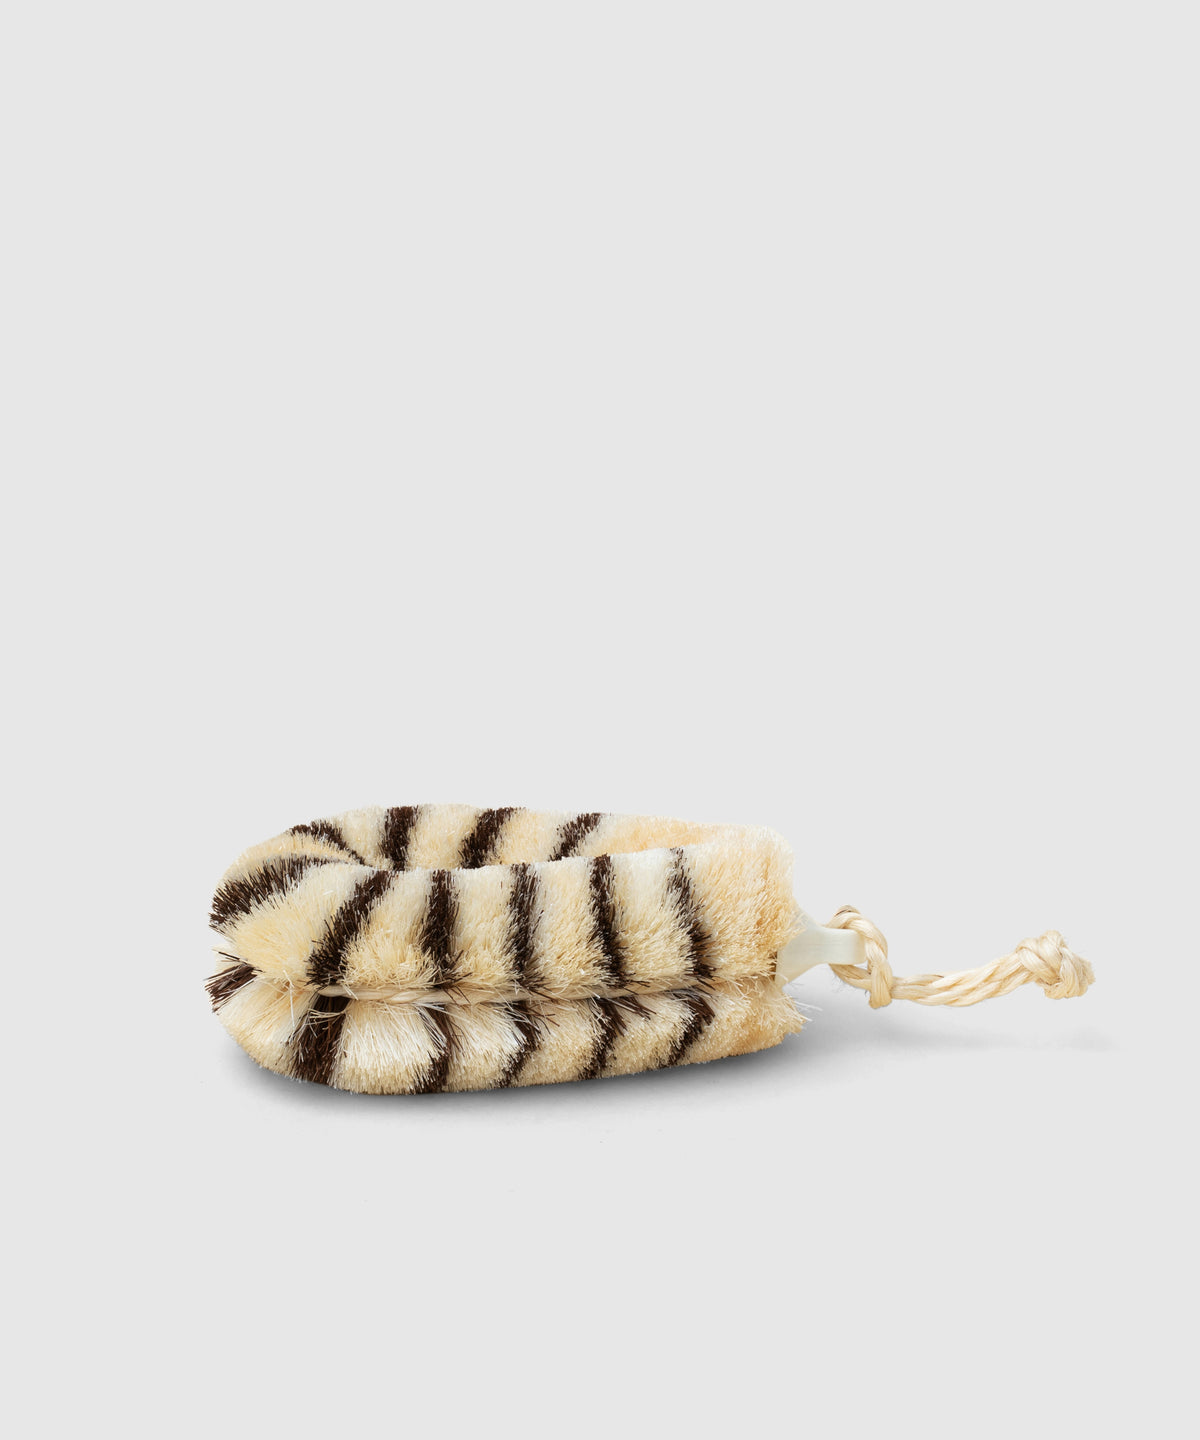 Tawashi Zebra Body Brush